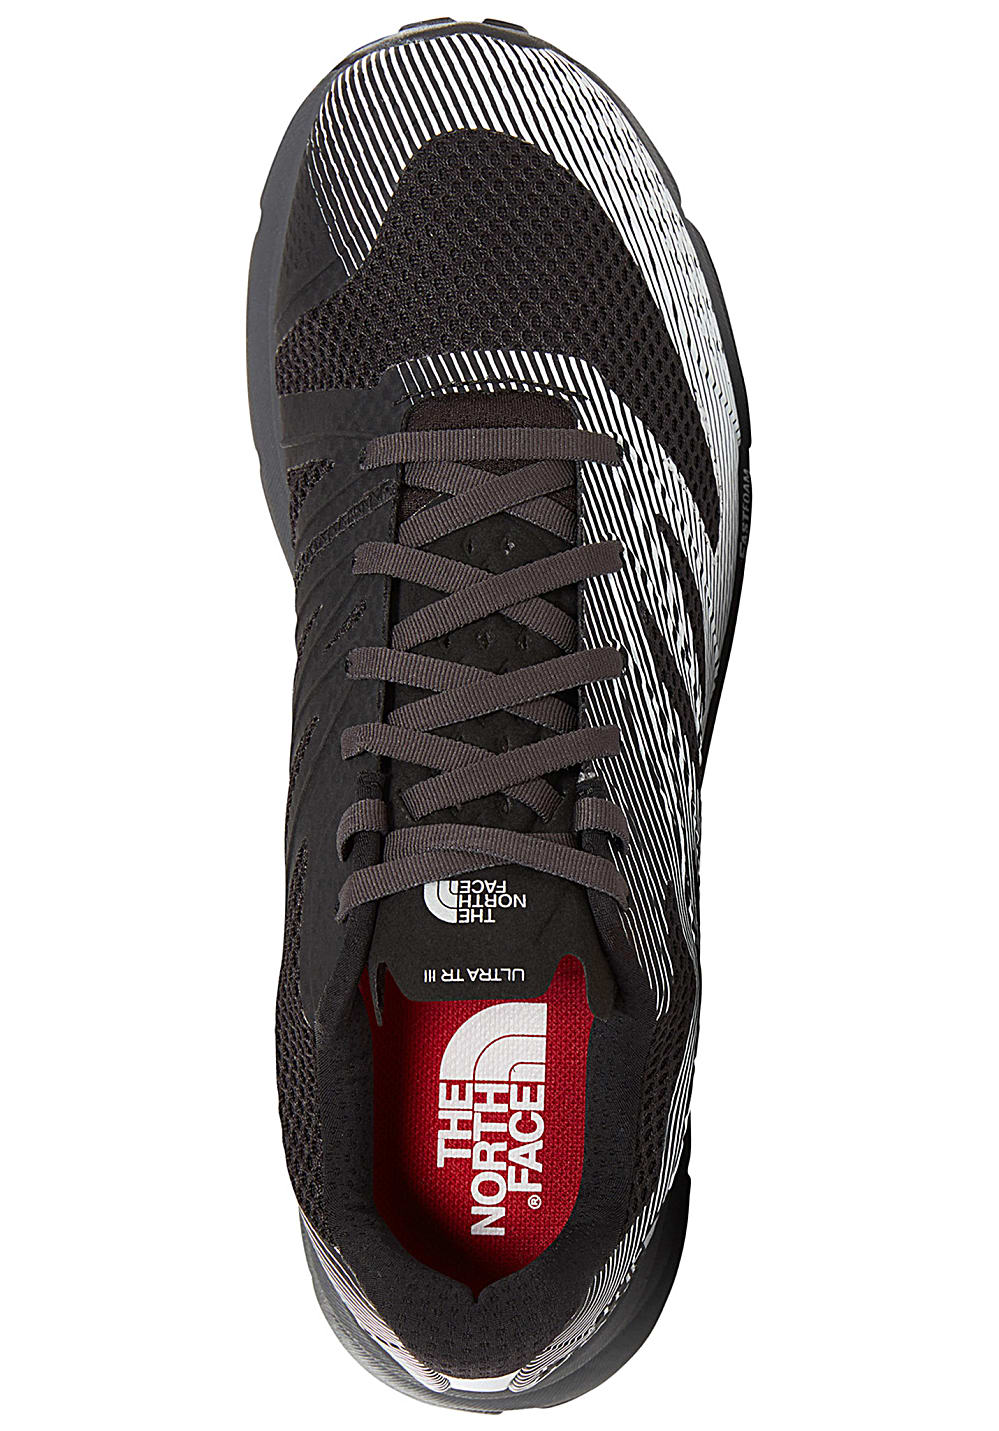 fbdb9763c1f Next. This product is currently out of stock. THE NORTH FACE. Ultra Tr III  - Trekking Shoes for Men. €129.95